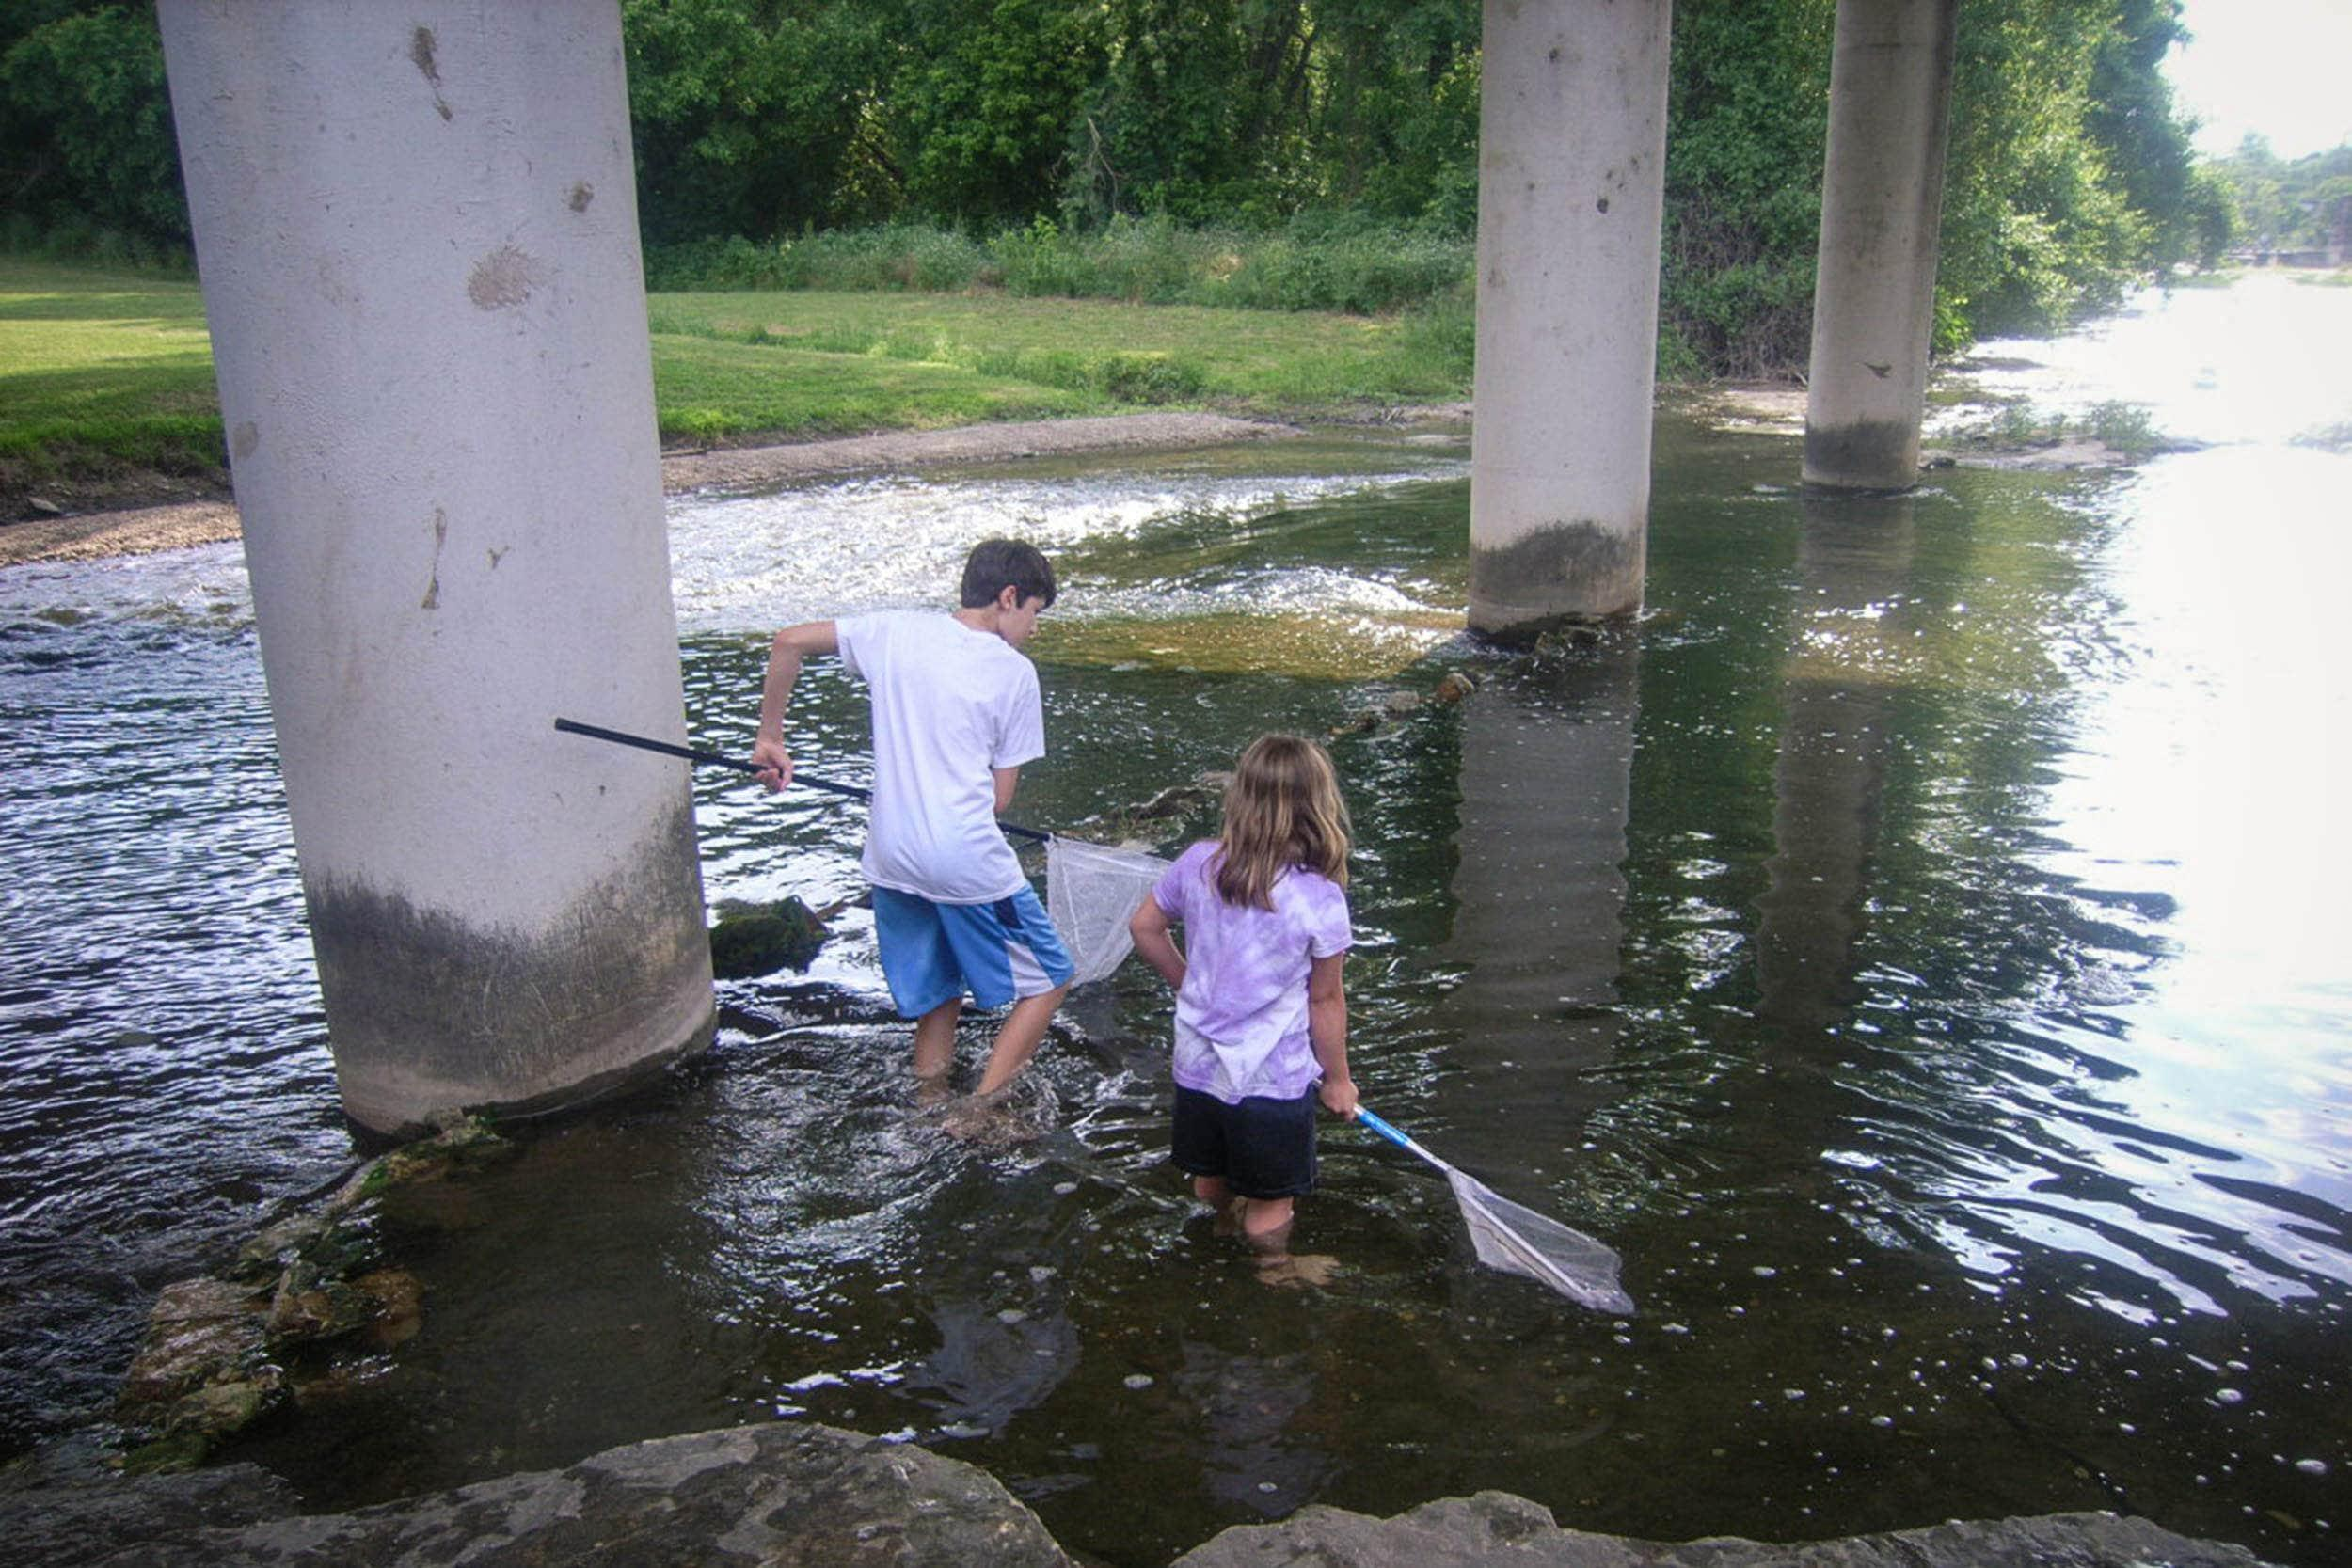 Children try to catch fish at Brushy Creek